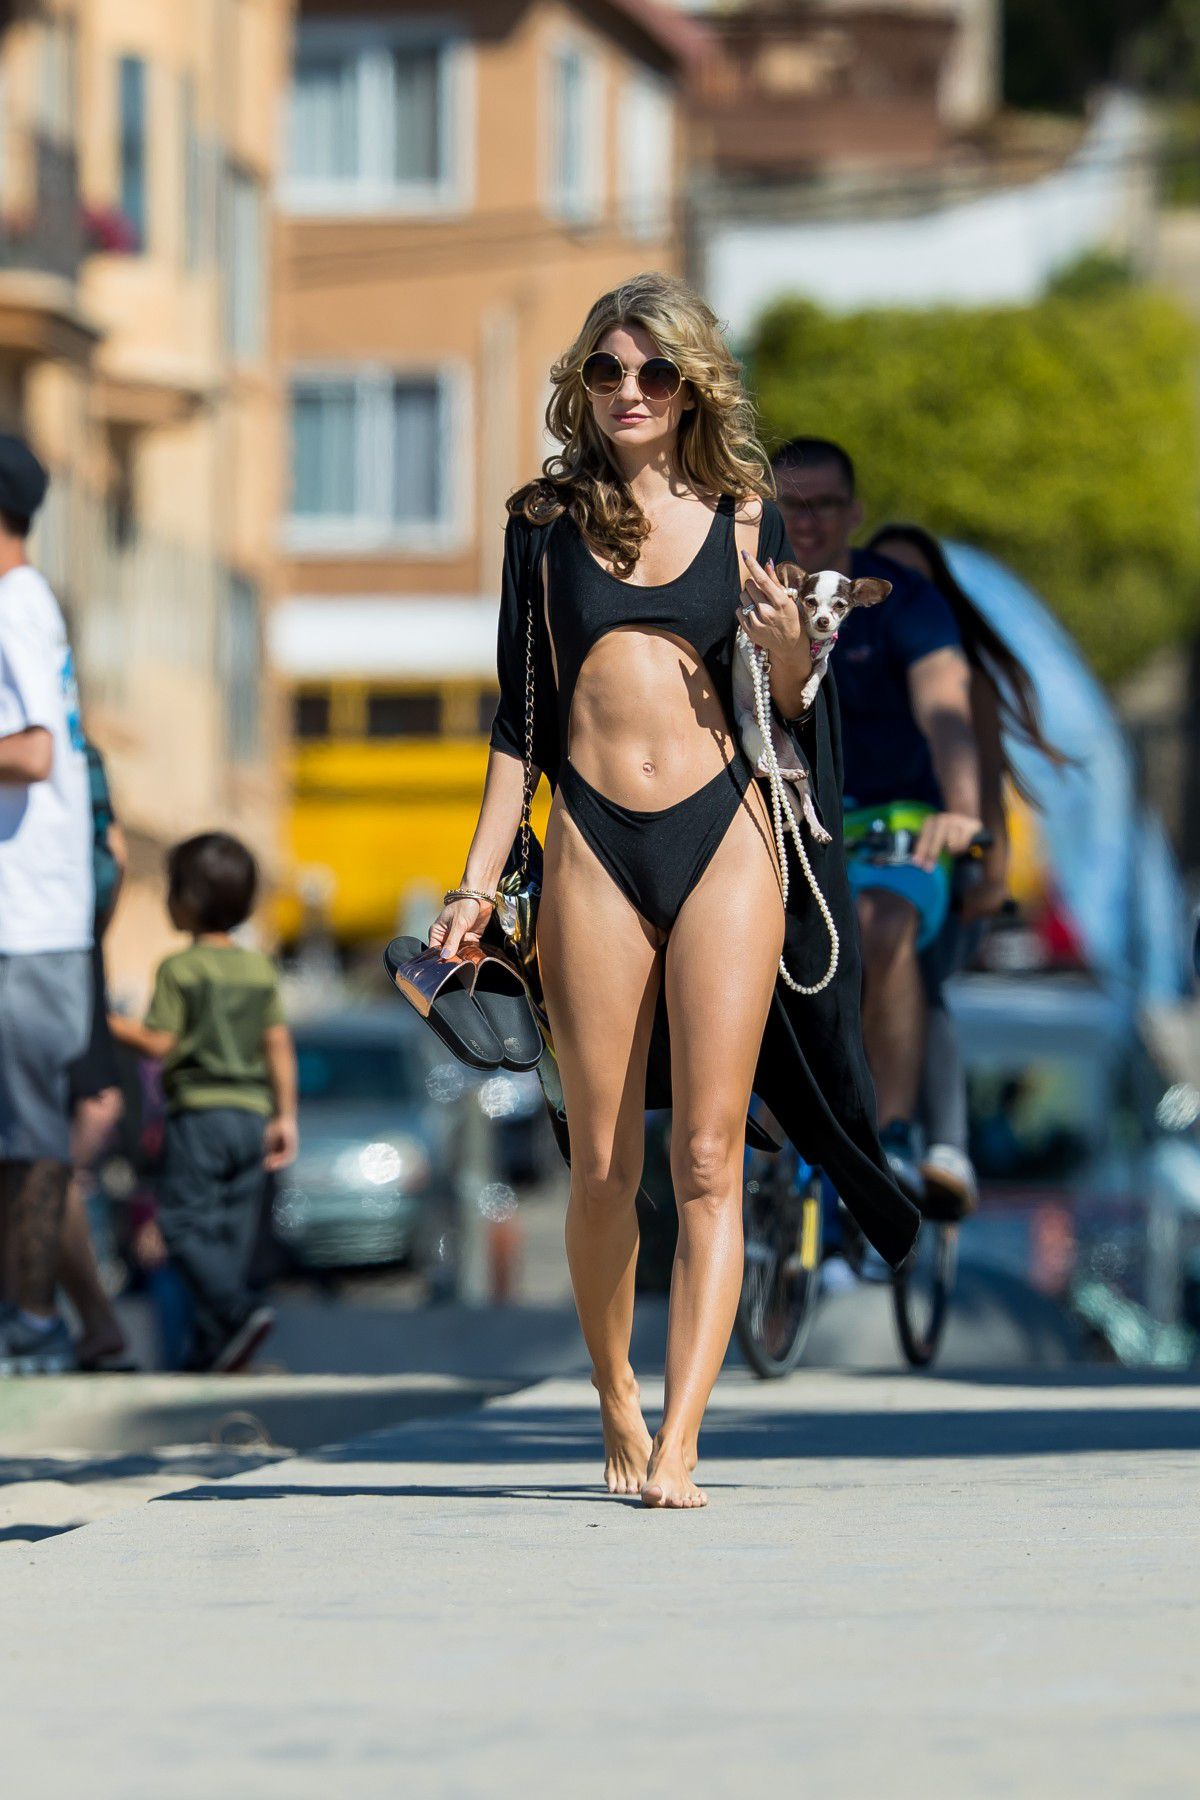 rachel-mccord-cameltoe-in-black-swimsuit-on-the-beach-in-santa-monica-3120